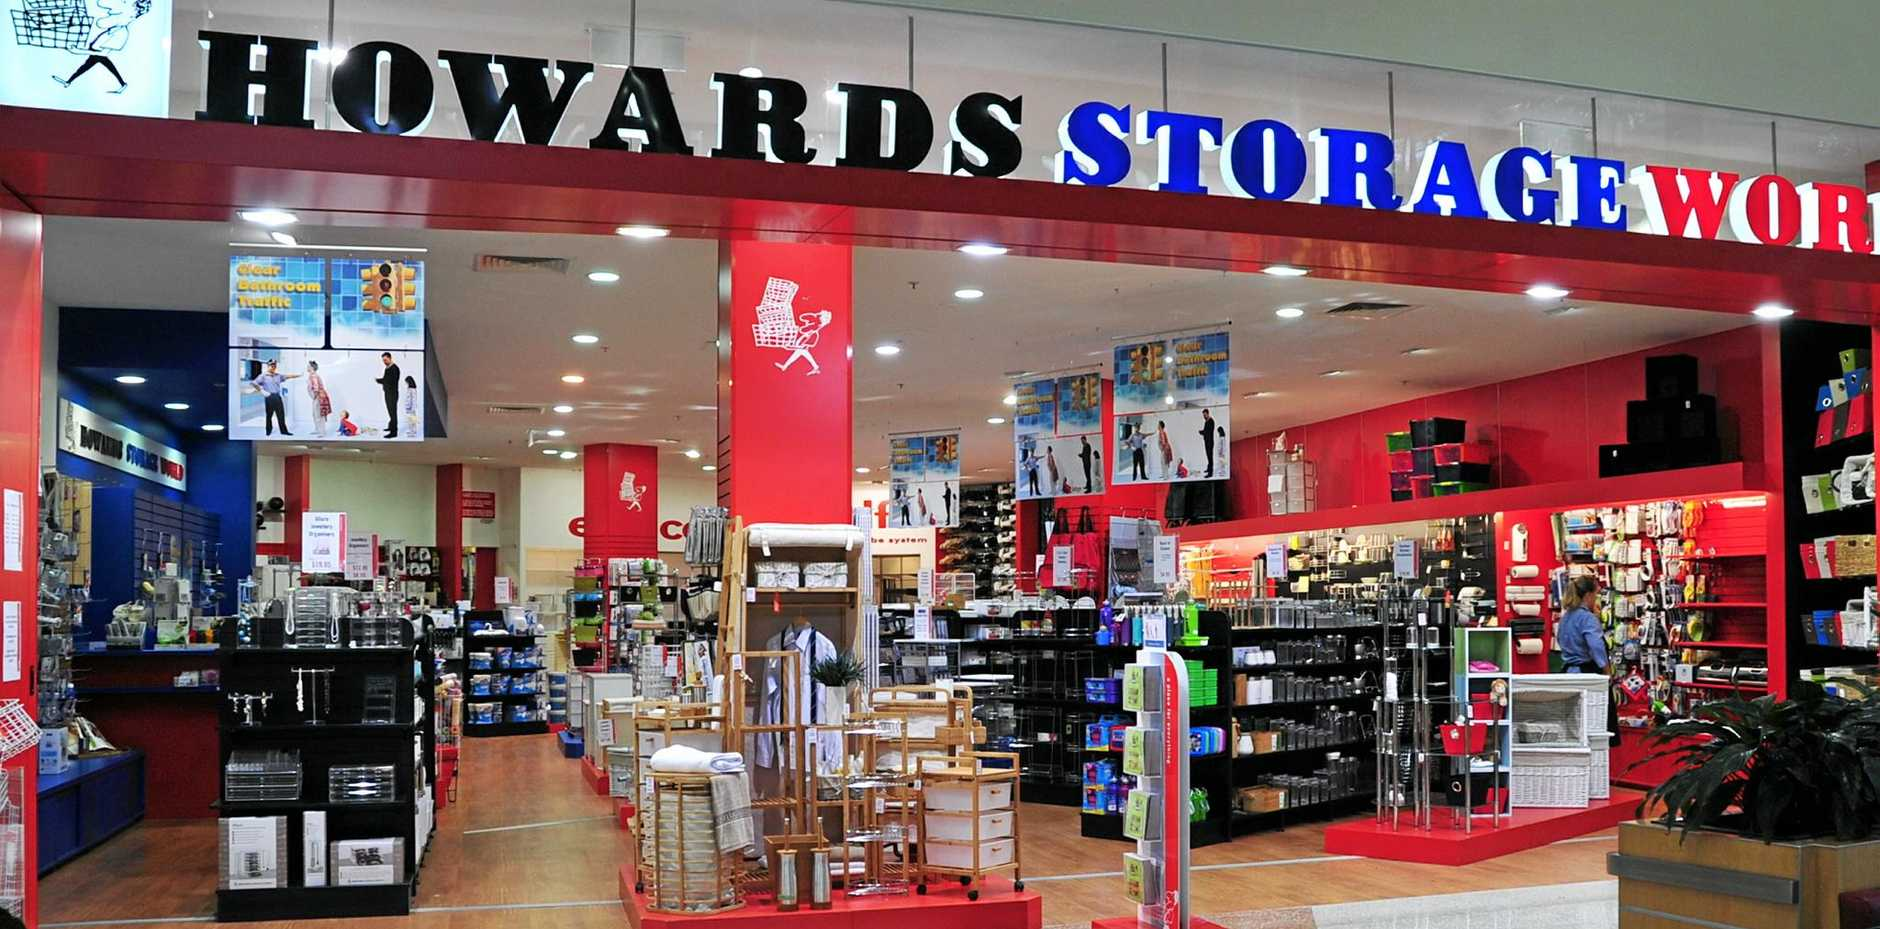 Howards Storage World once had this shop at Noosa Civic. Its Maroochydore store is open, and located in the same complex as Bunnings on Dalton Dr.